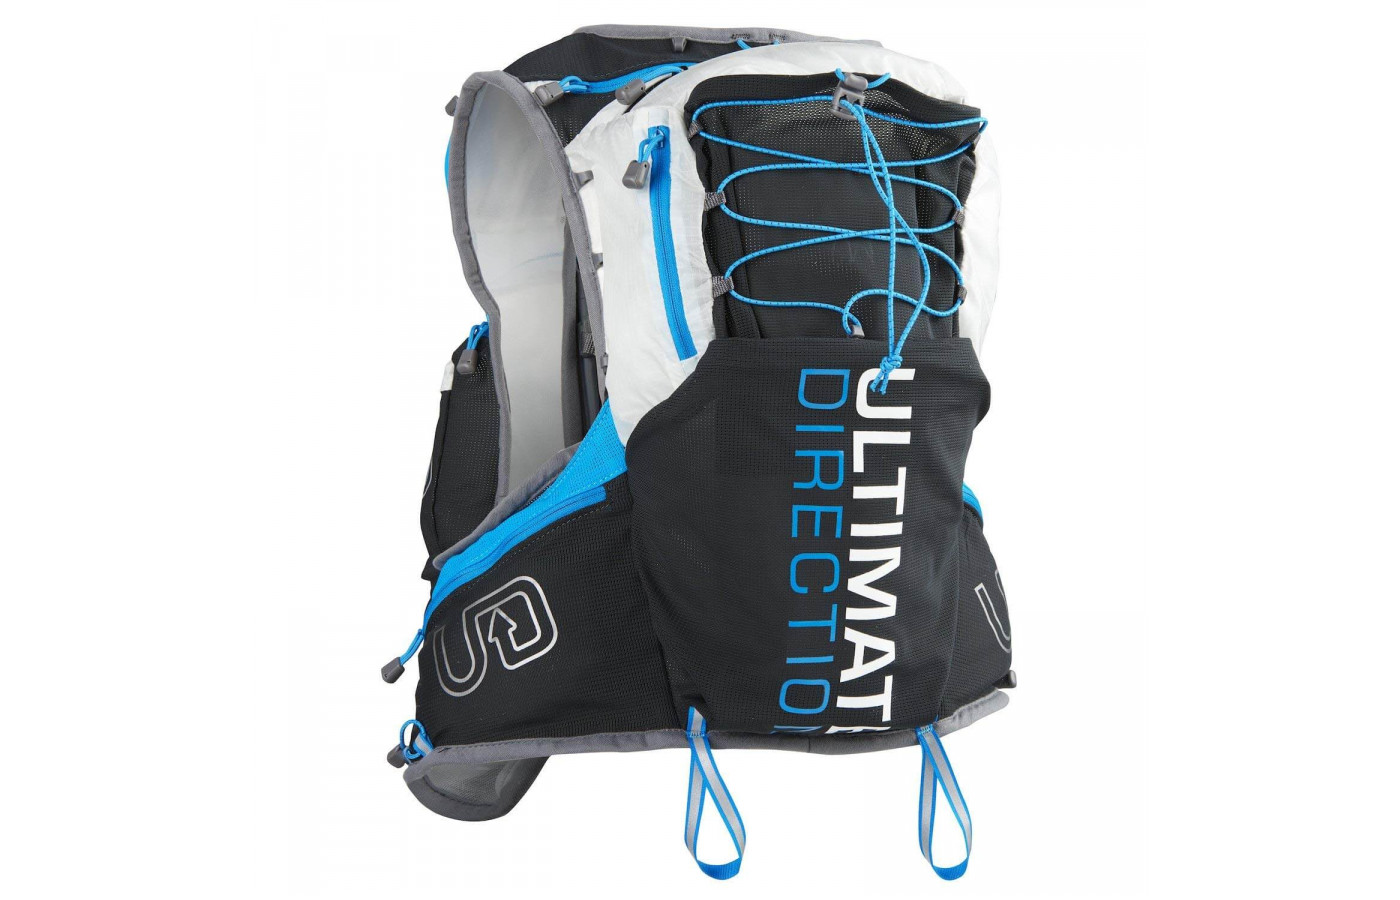 The Ultimate Direction PB Adventure Vest 3.0 has a total capacity of 16L